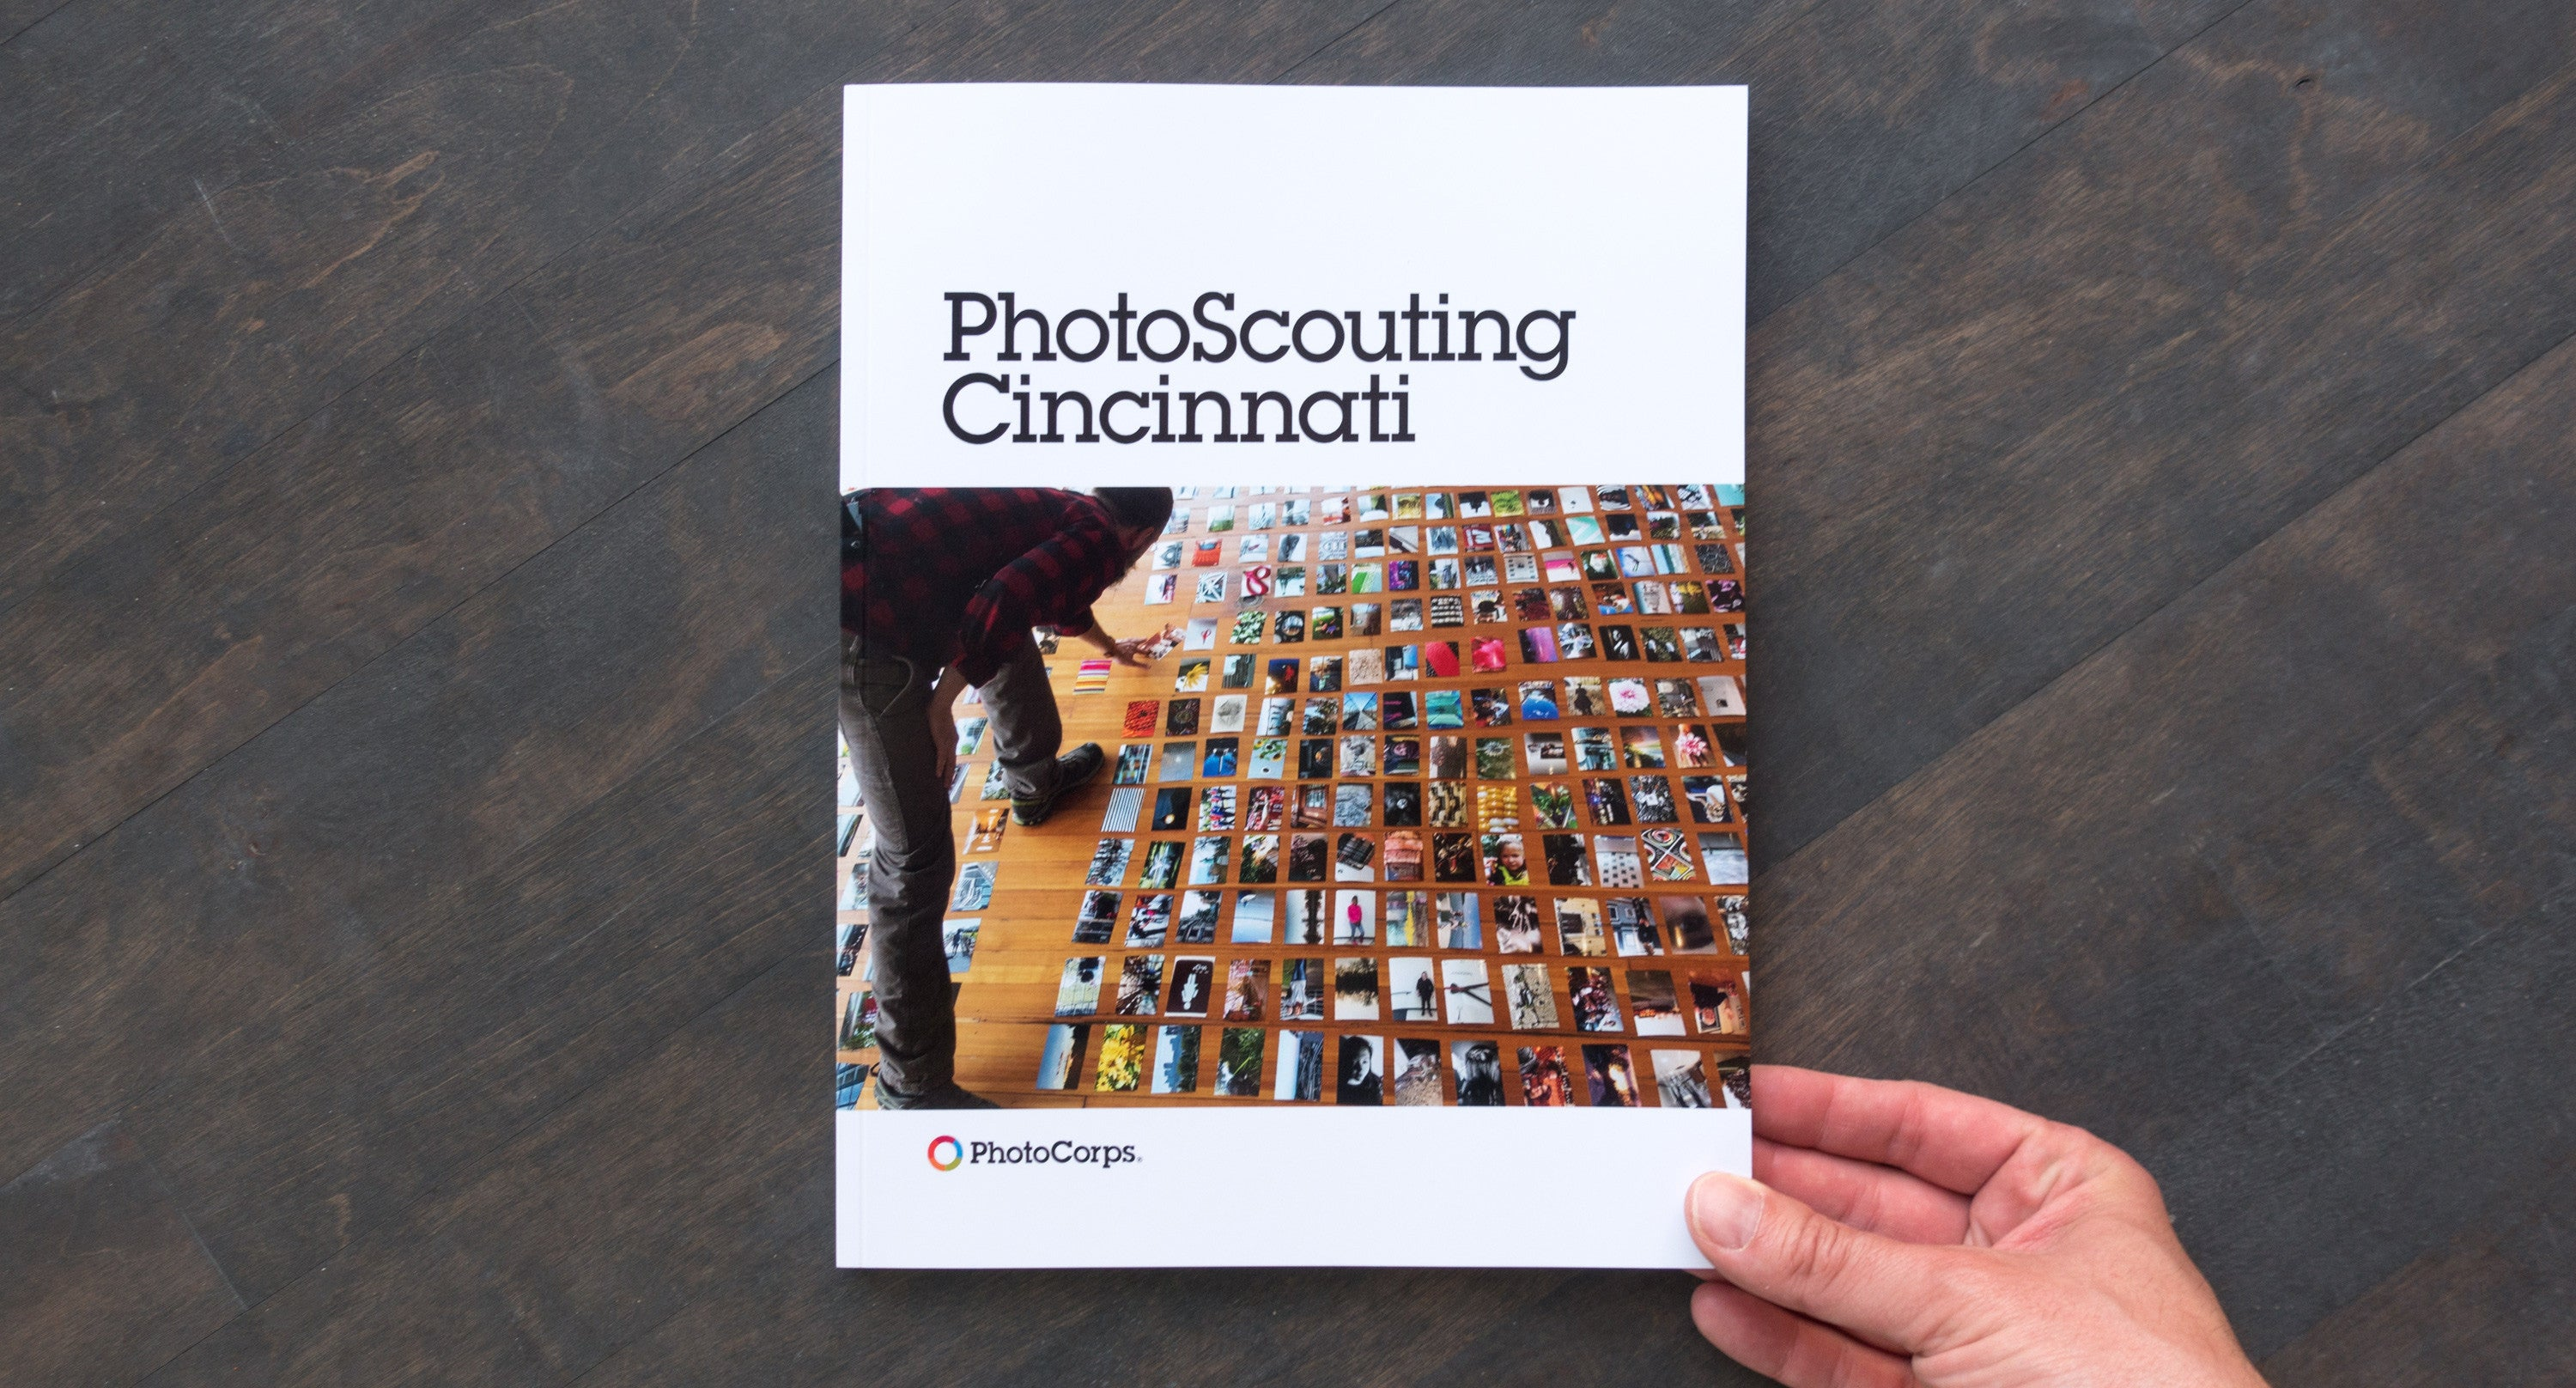 PhotoScouting Cincinnati